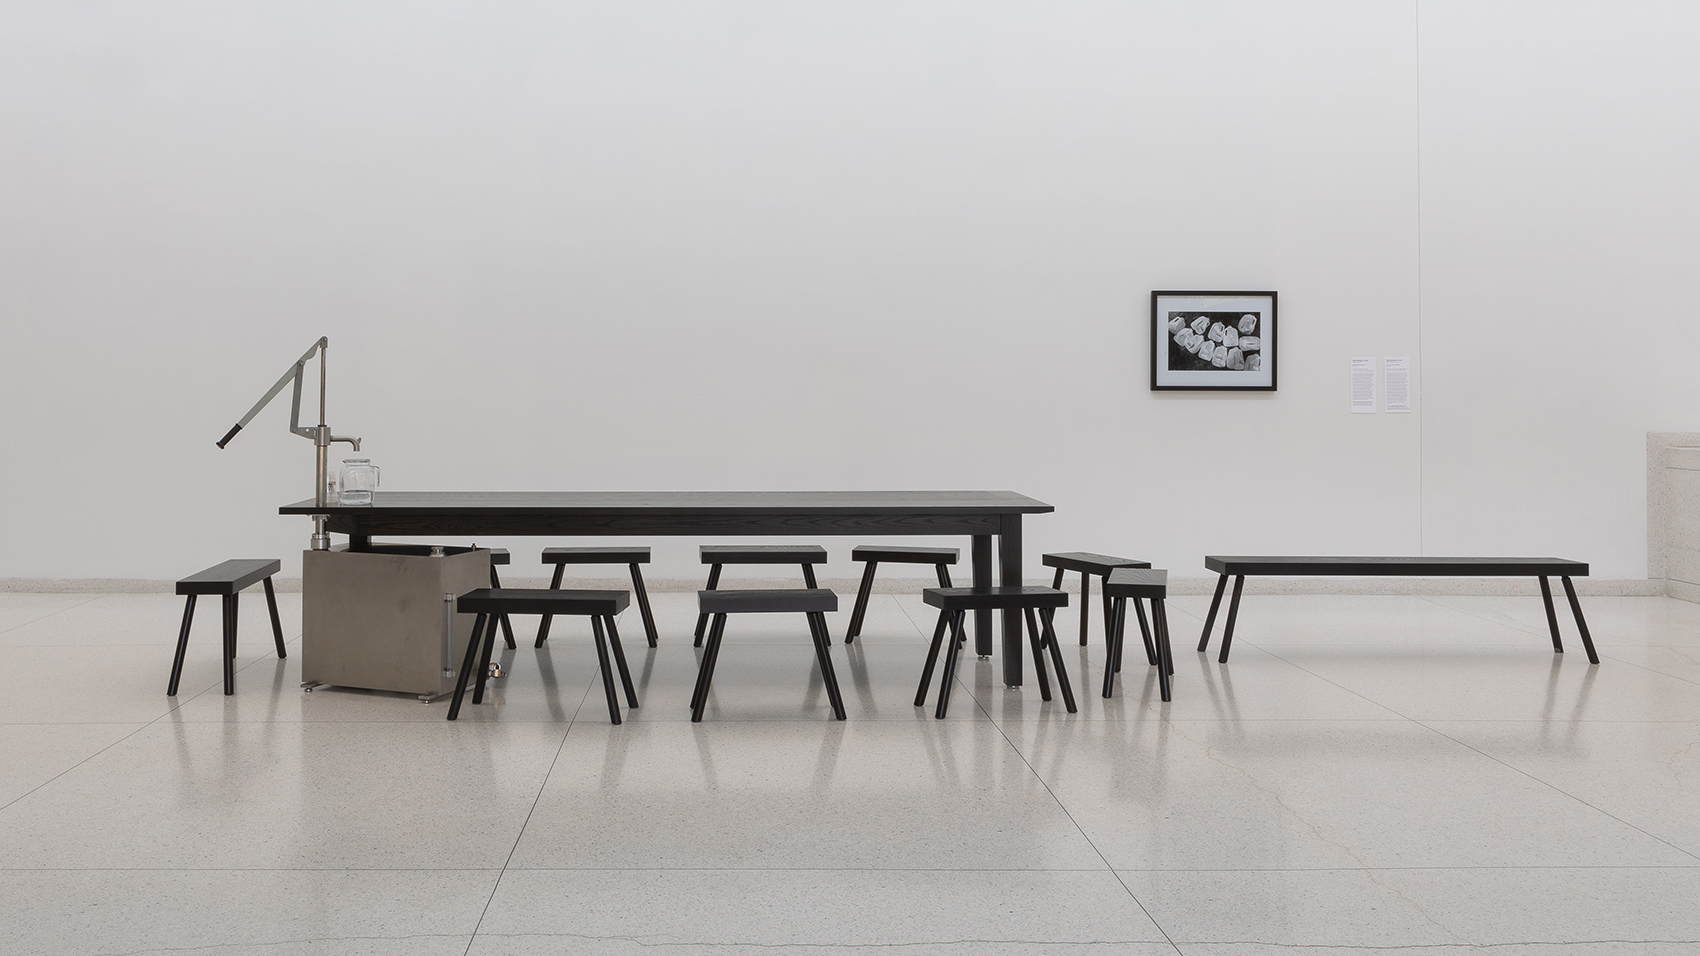 A hand pump attached to a metal canister serves as the 4th leg of a dark wooden table in a white museum gallery